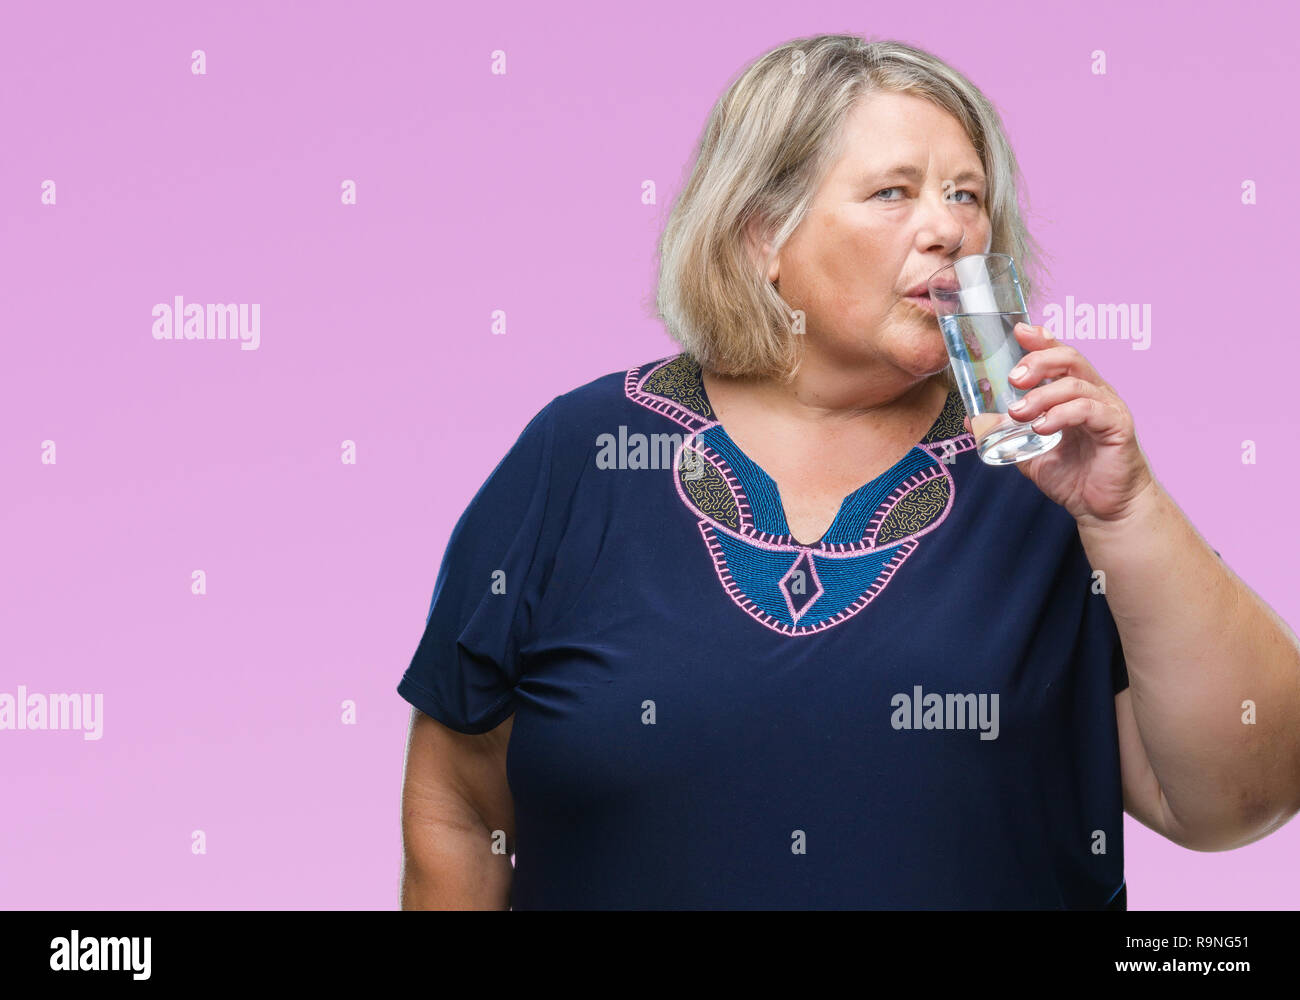 c347f19b283 Senior plus size caucasian woman drinking glass of water over isolated  background with a confident expression